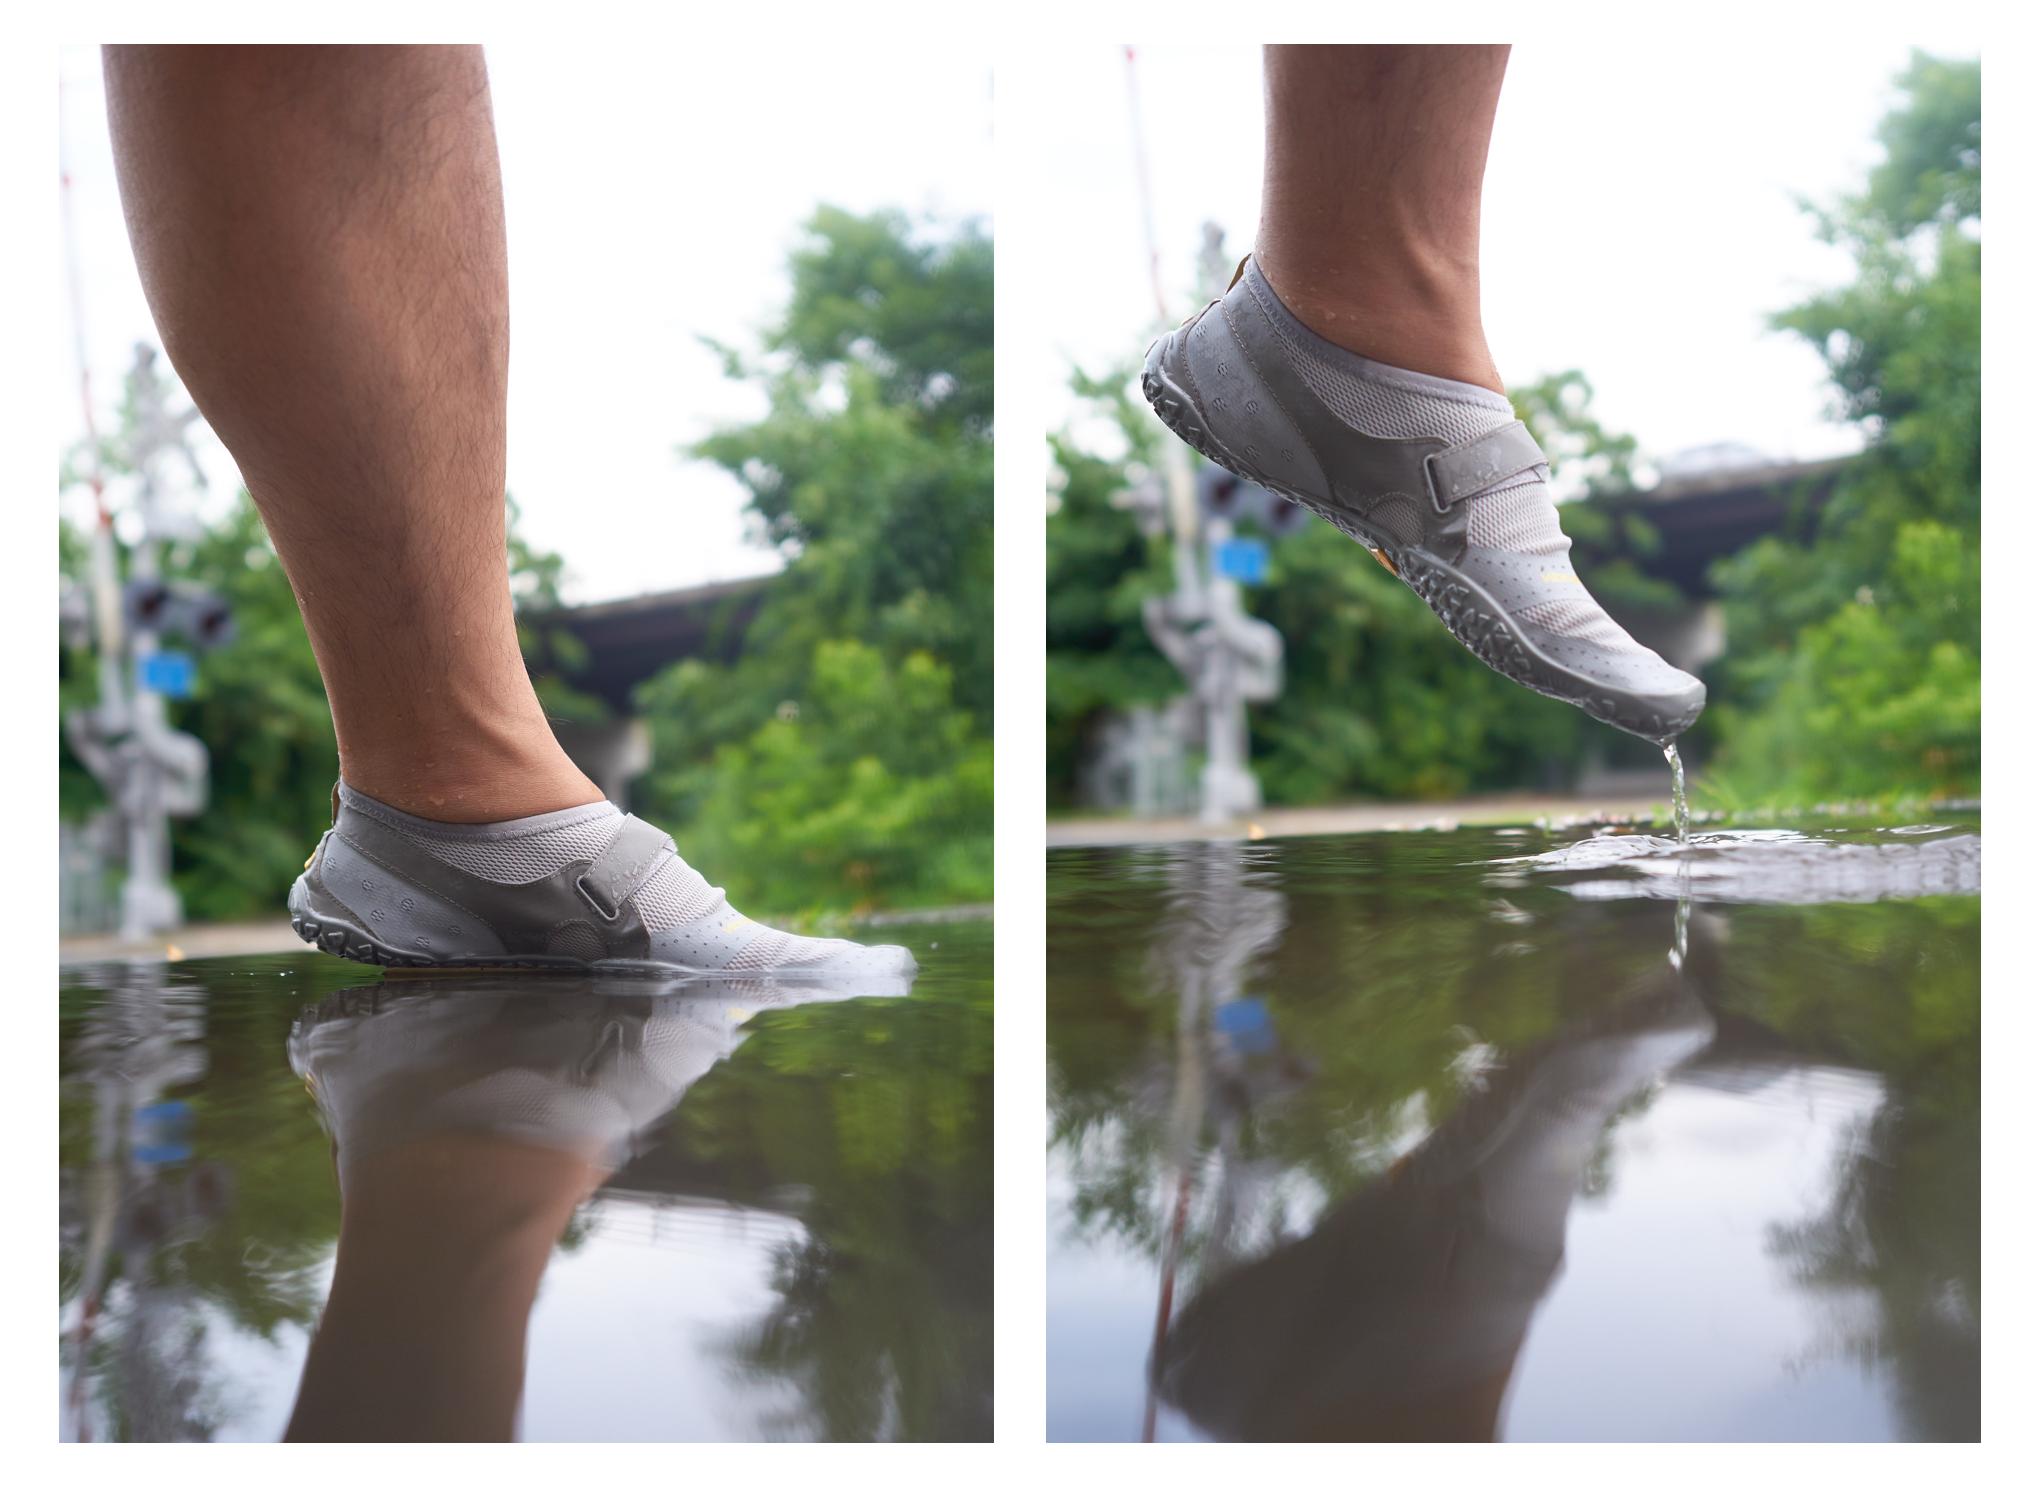 The V-Aqua features drain holes to evacuate water out of your footbed as quickly as possible between submersions